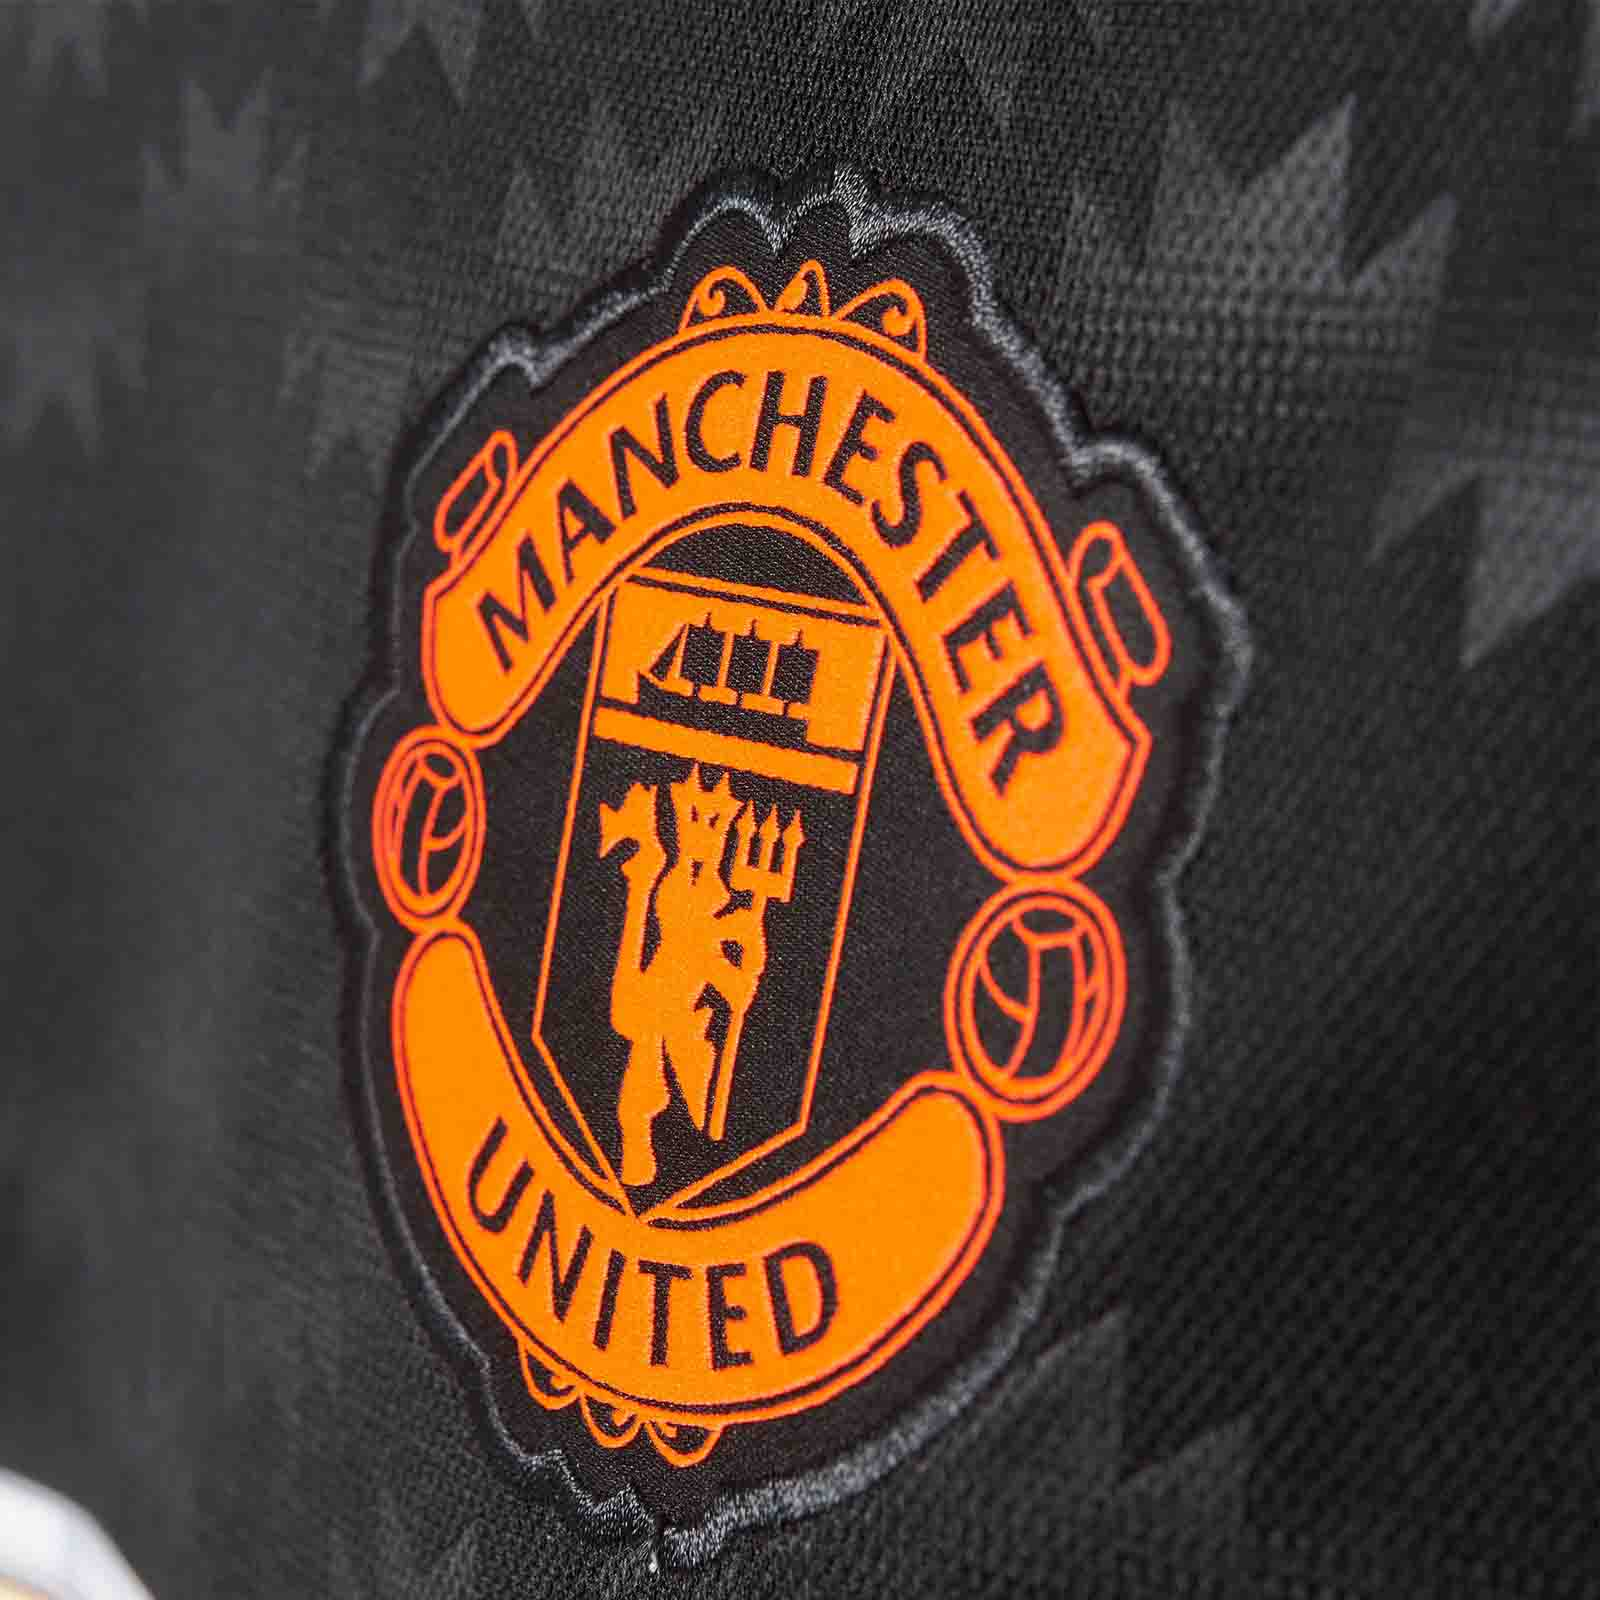 manchester united accessories buy online